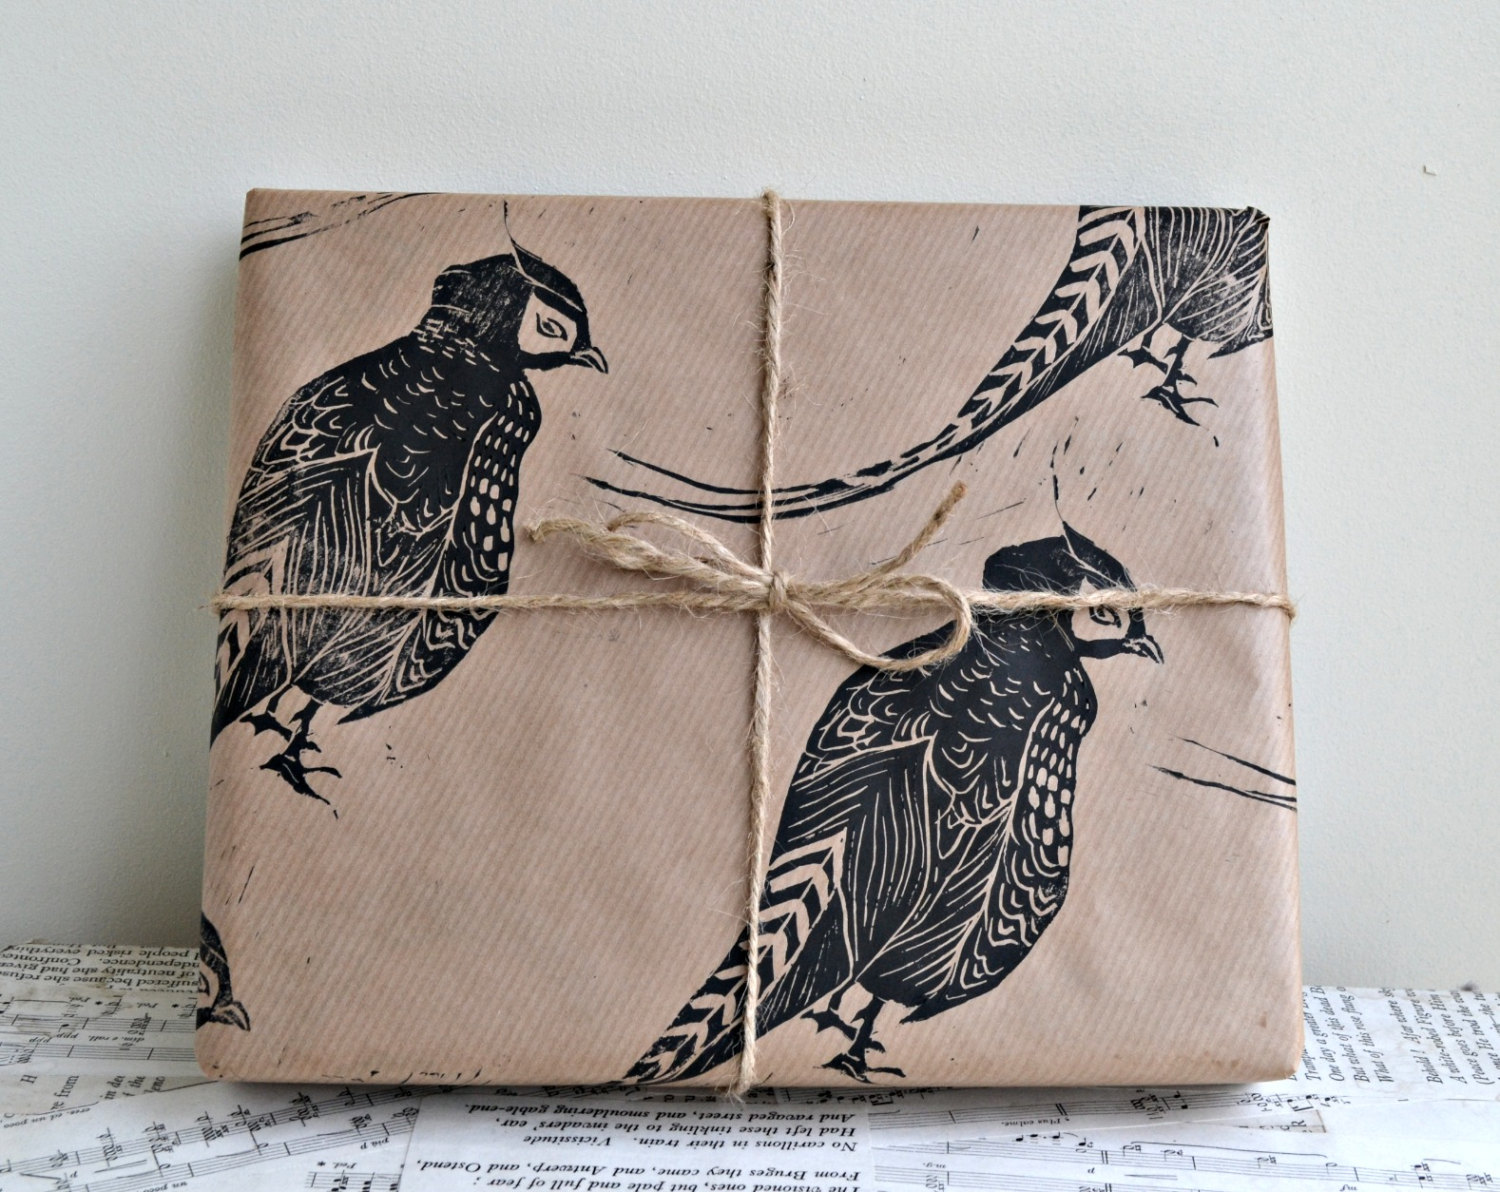 pheasant-hand-printed-wrapping-paper-gift-christmas